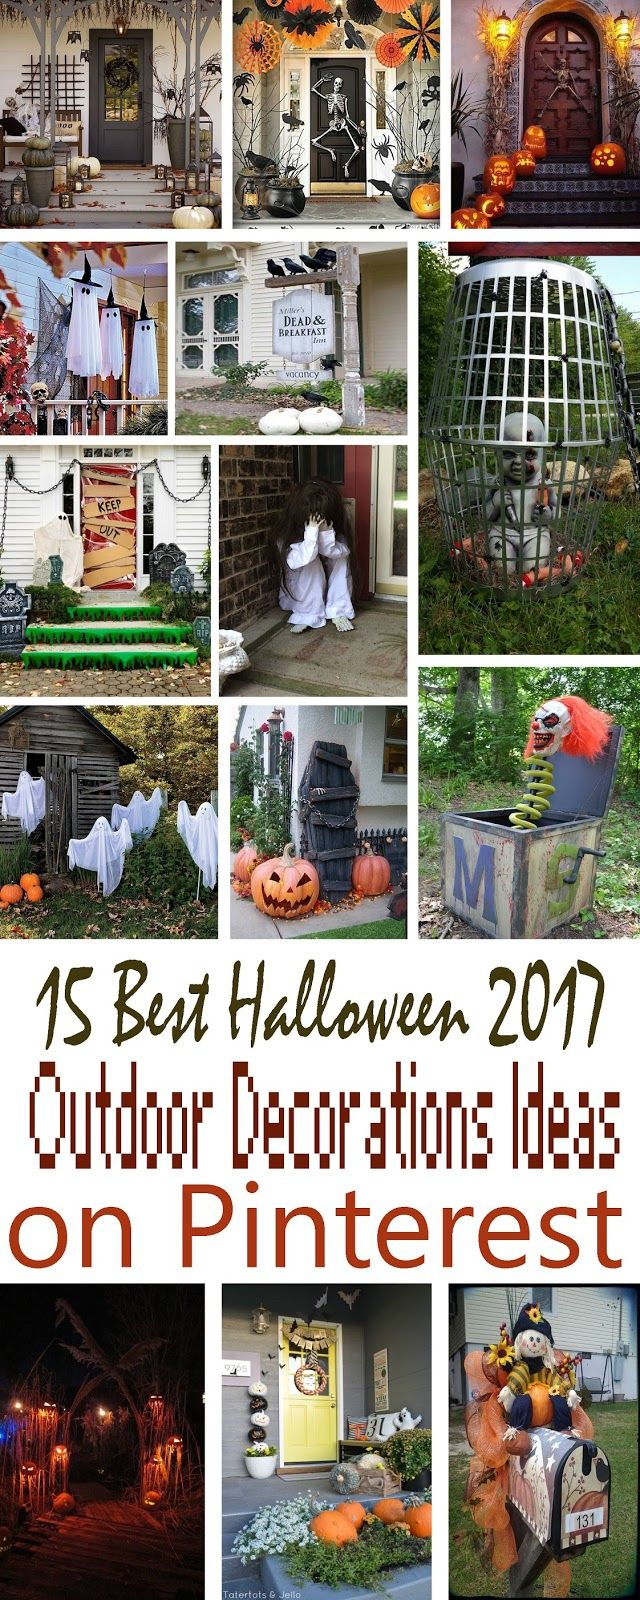 So Halloween Ah Finally Last 9 Days To Go For Halloween S Night So I Thought To Share Halloween Outdoor Decorations Outdoor Halloween Christmas Decor Diy